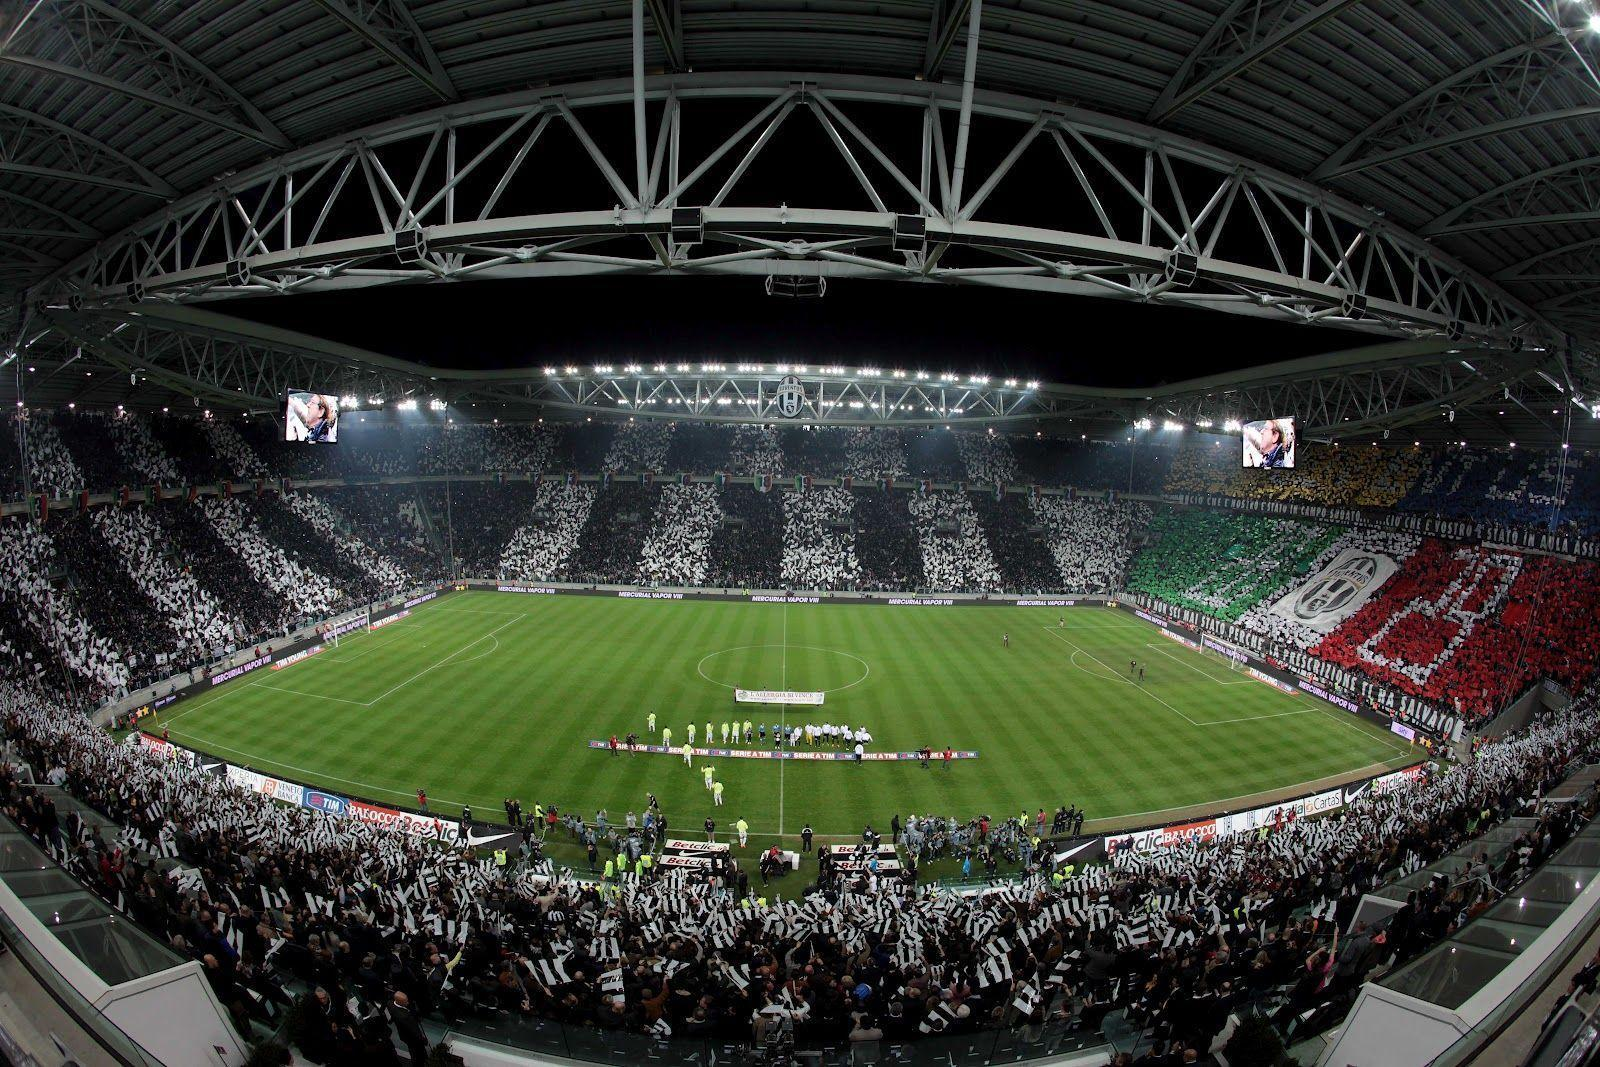 juventus stadium wallpapers wallpaper cave juventus stadium wallpapers wallpaper